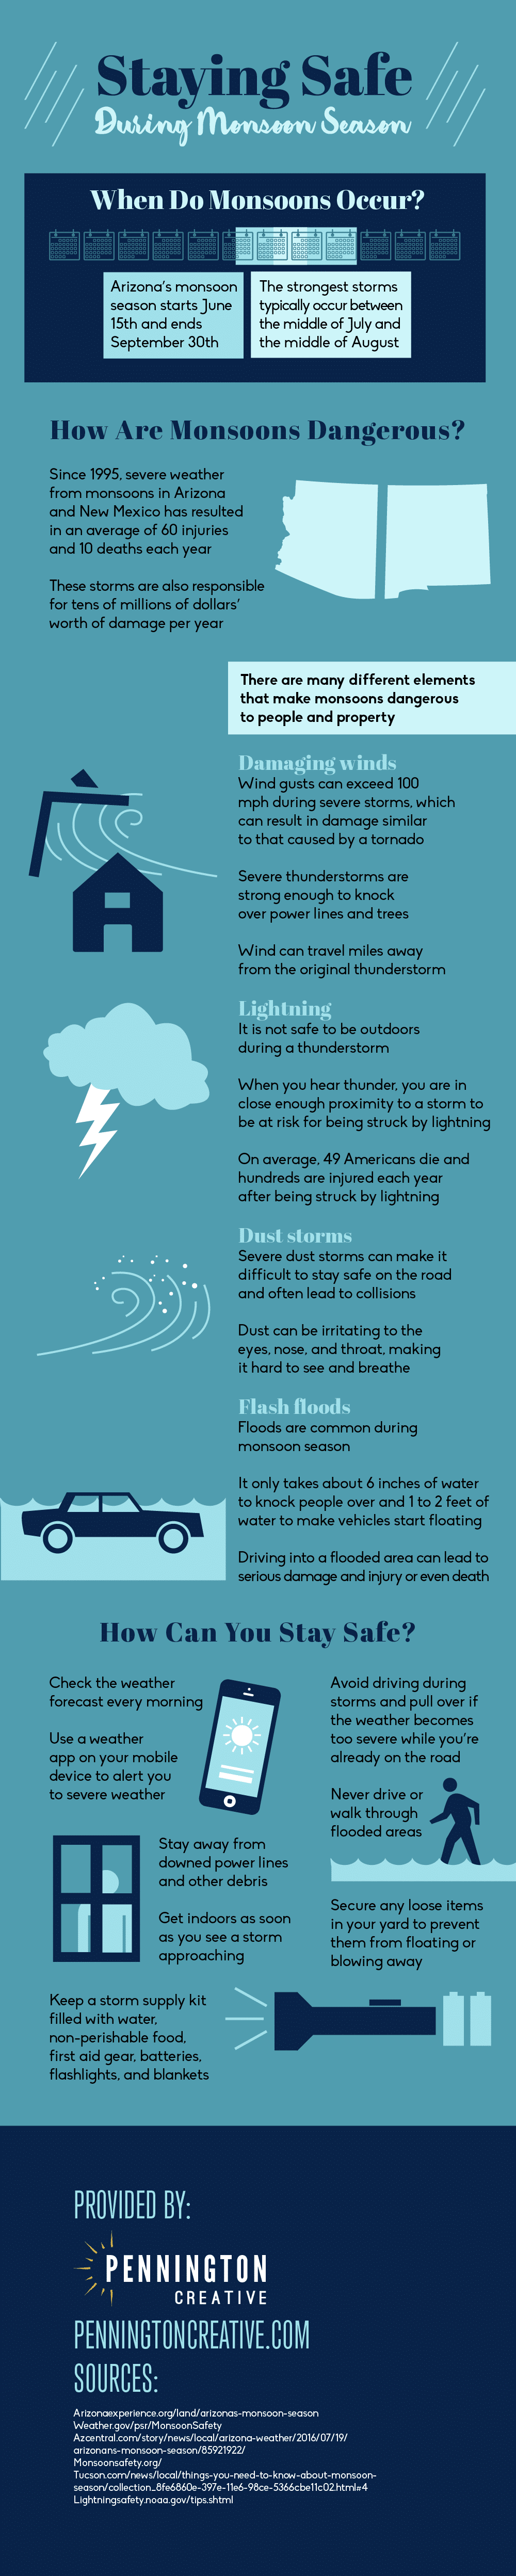 Infographic with tips for staying safe duing monsoon storms.